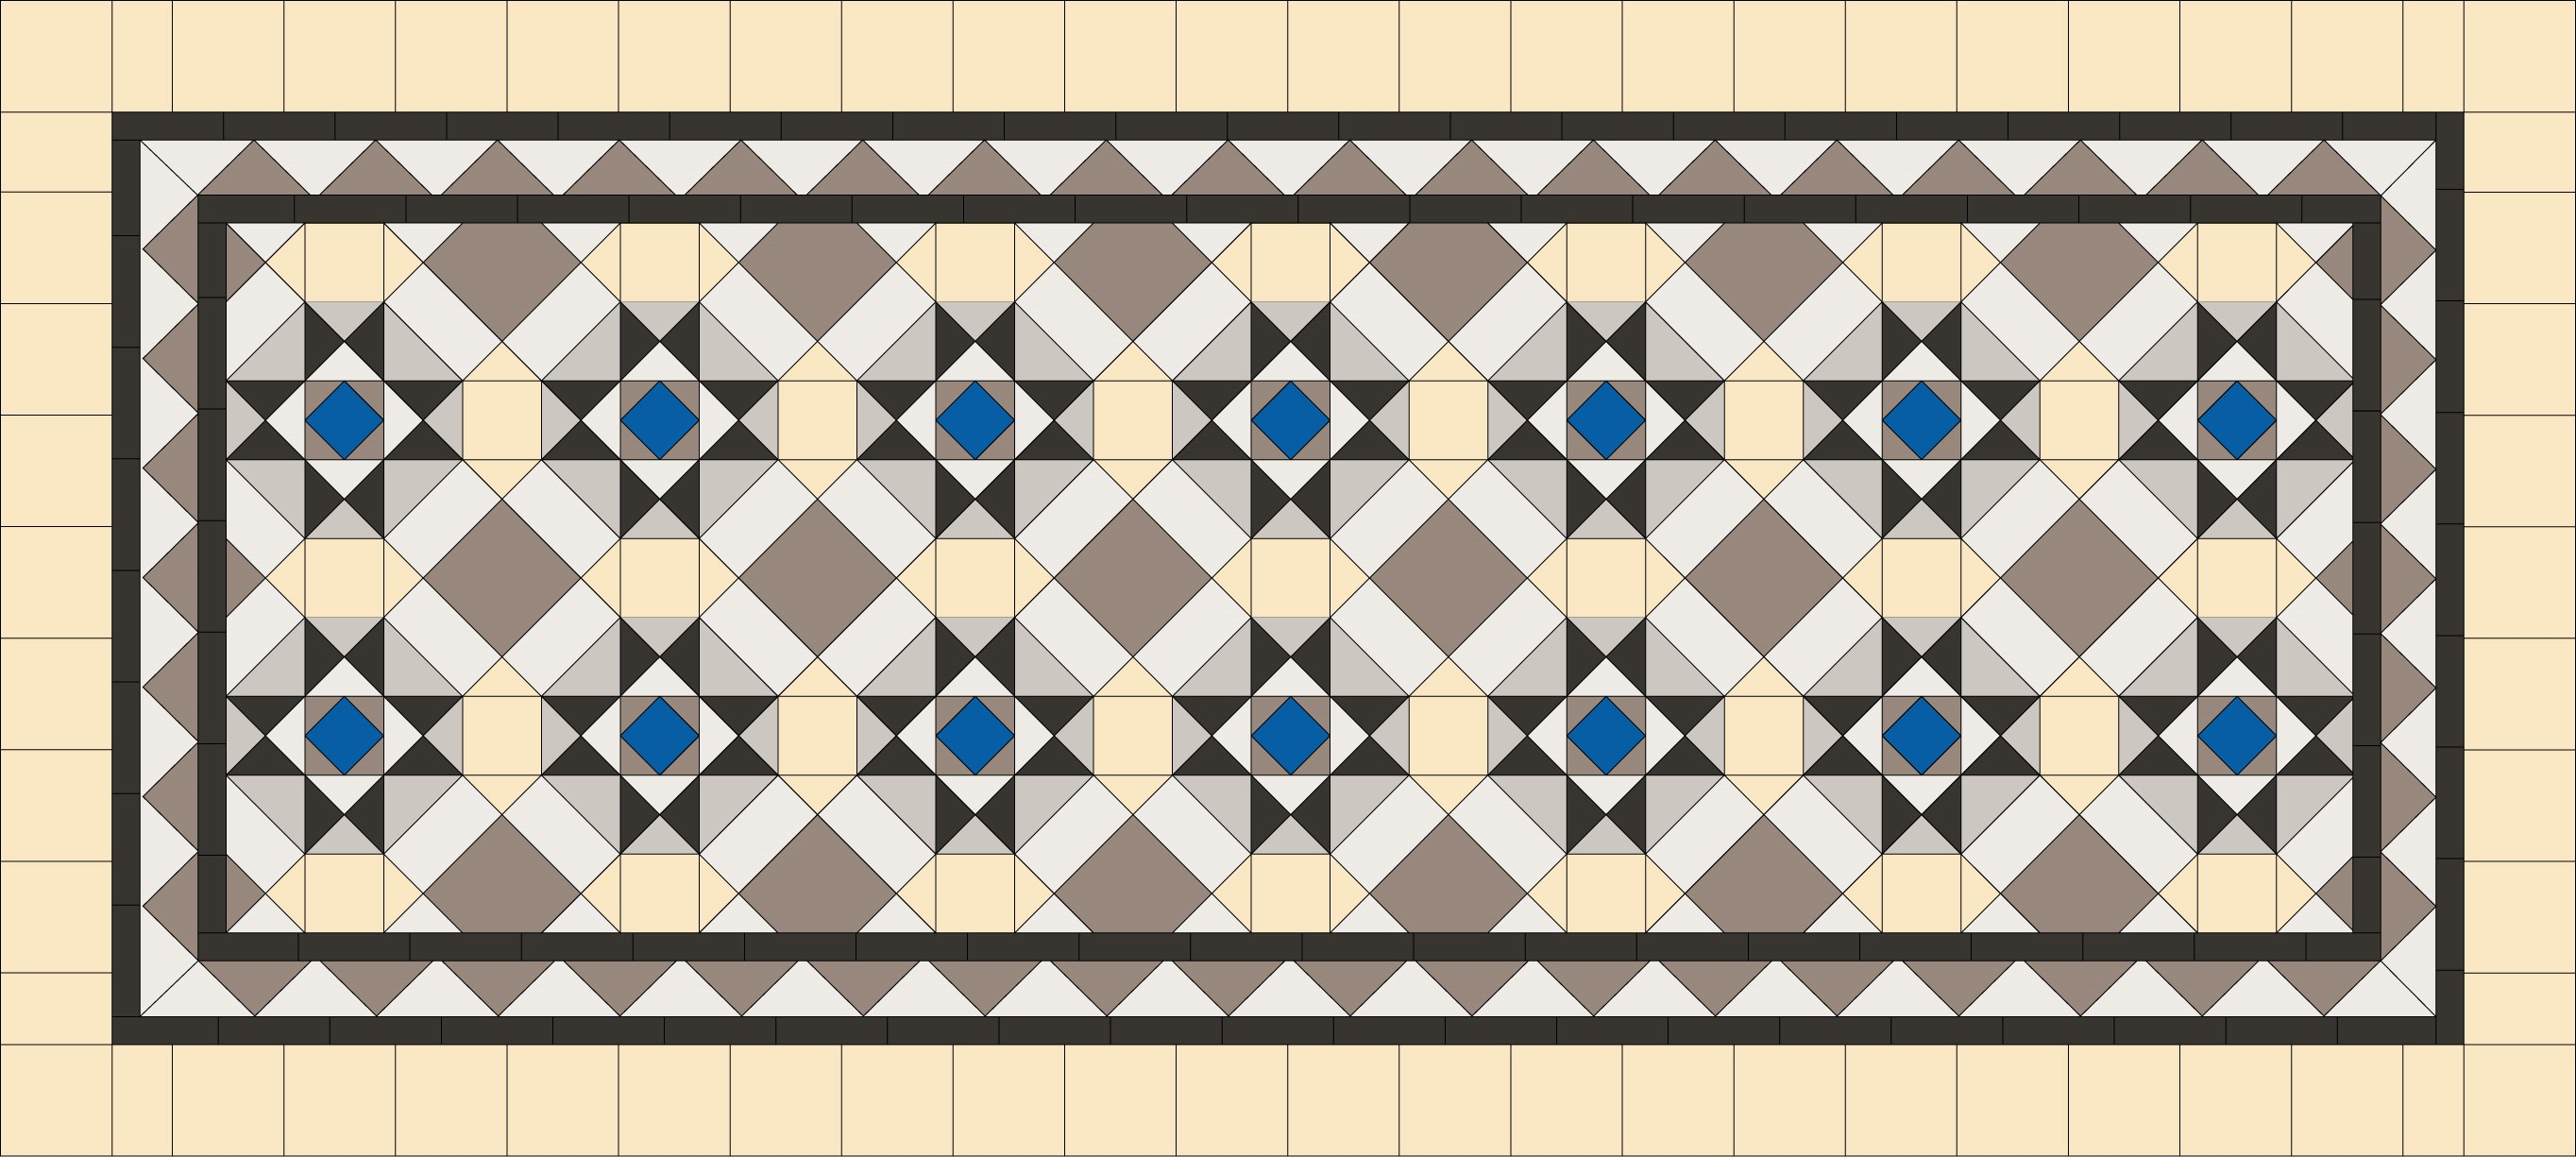 Tessellated patterns renditions tiles tessellated pattern 5 dailygadgetfo Images